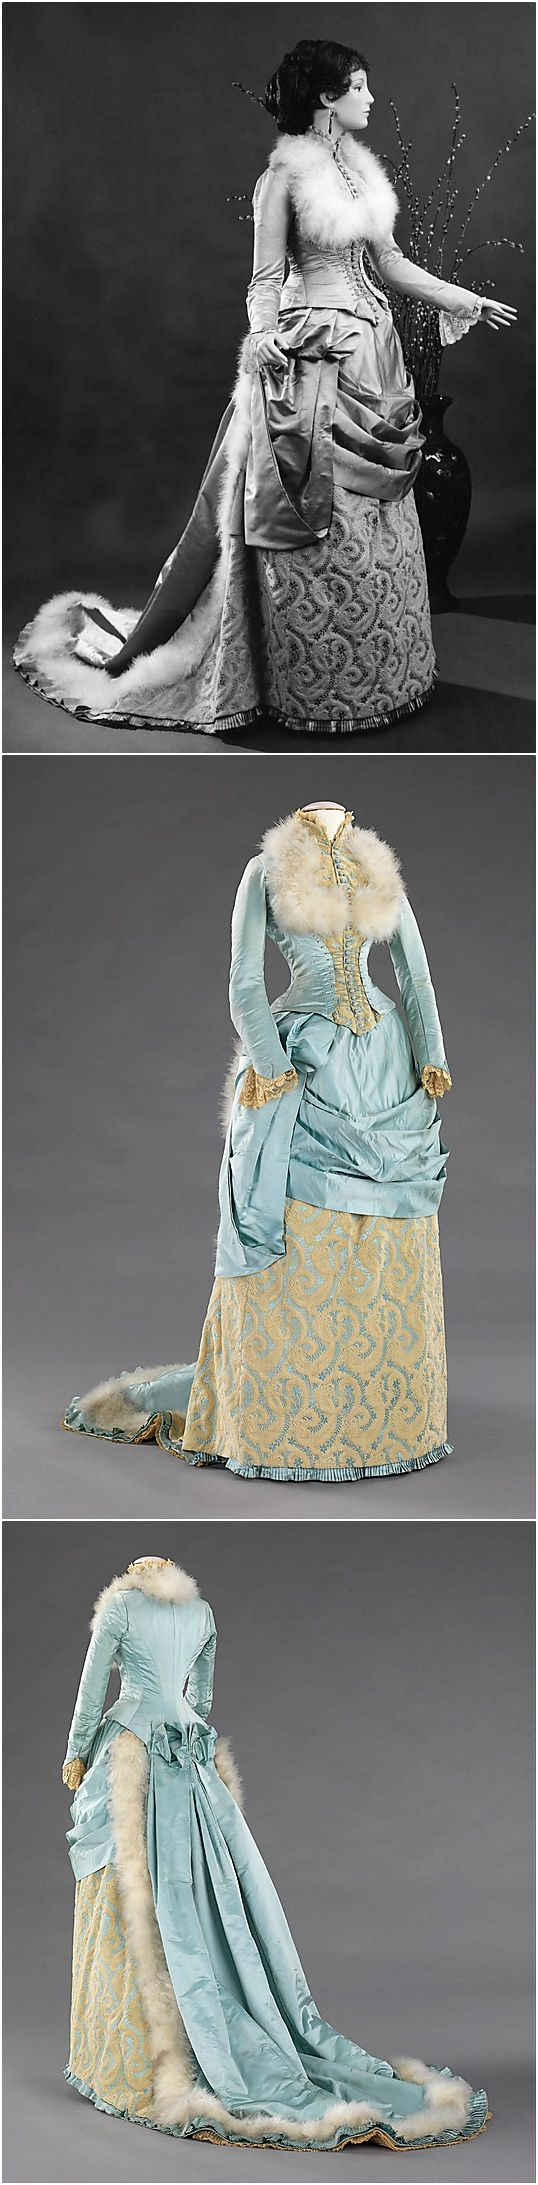 Evening dress, by R. H. White & Co., 1885, at the Met. See: http://www.metmuseum.org/collections/search-the-collections/156559?img=0